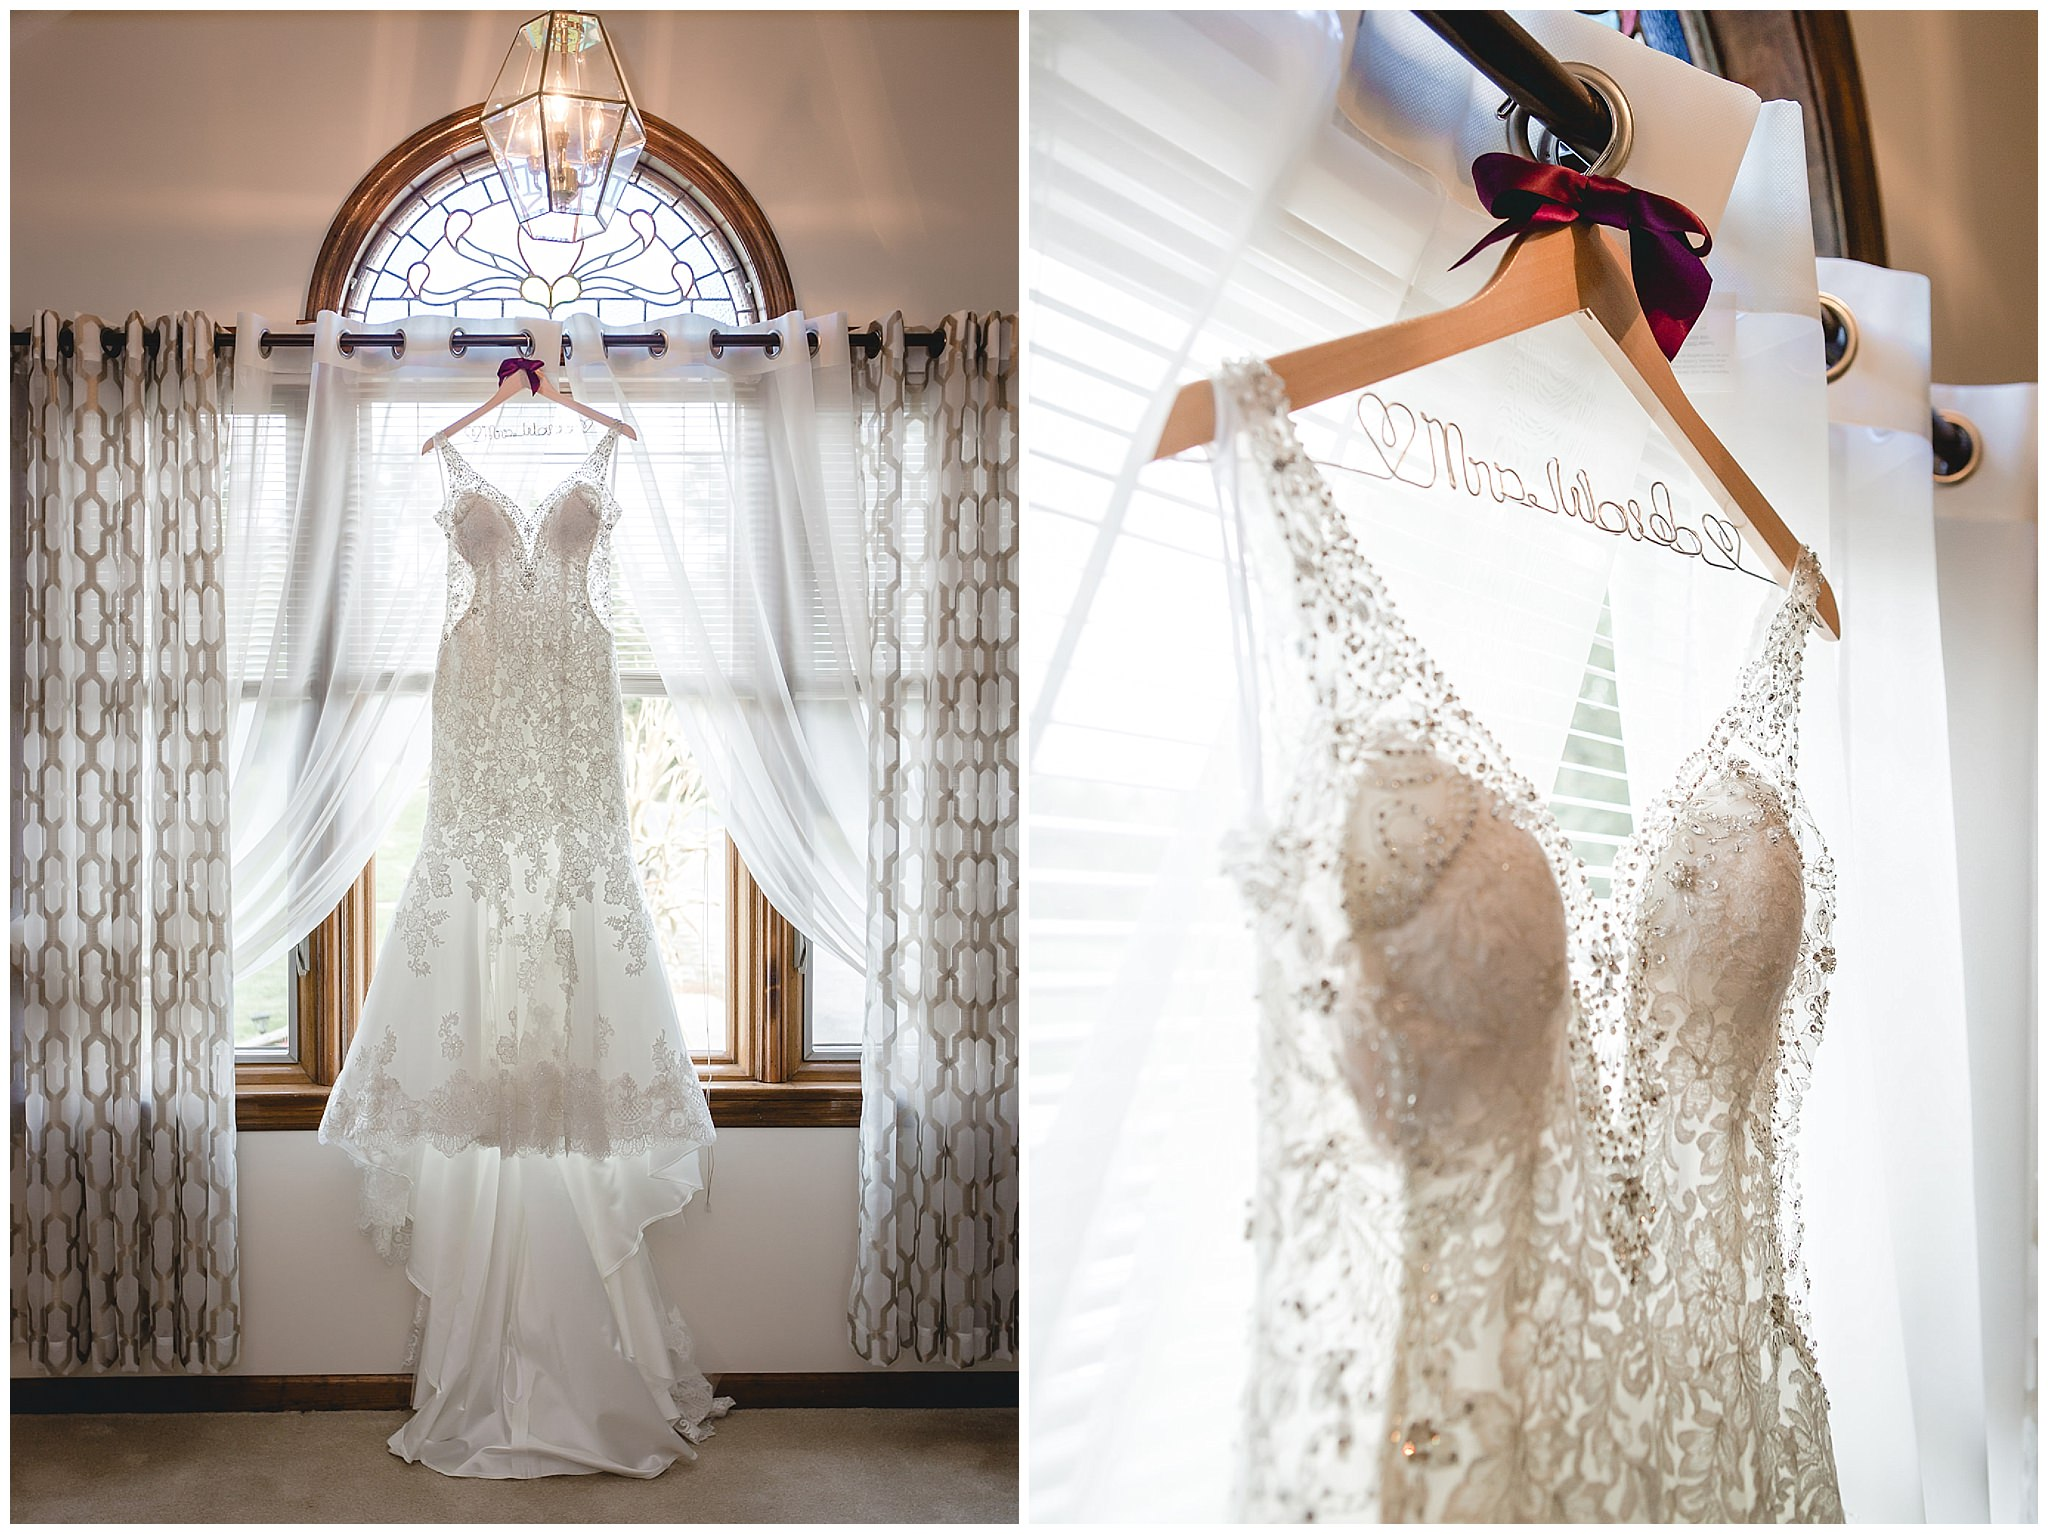 Wedding dress by Allure Bridals from Bridal Beginning